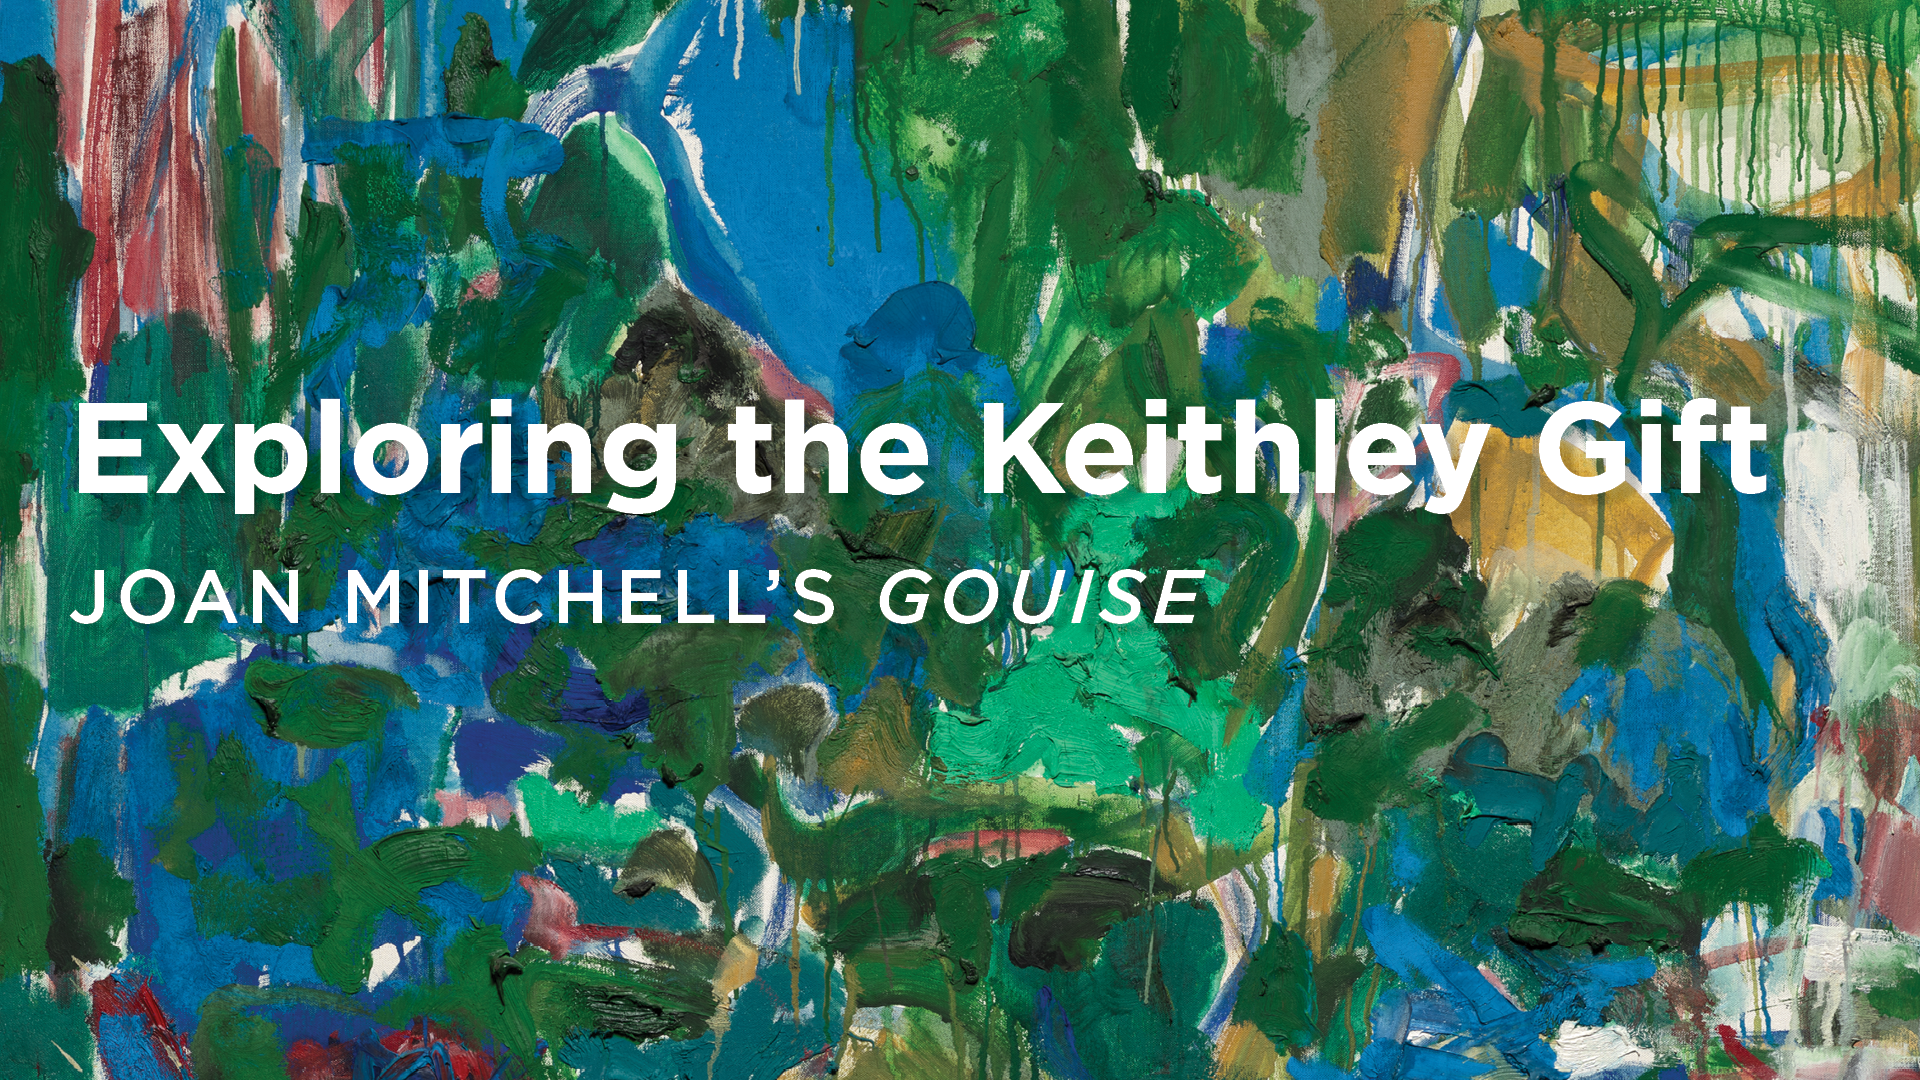 Exploring the Keithley Gift: Joan Mitchell's Gouise